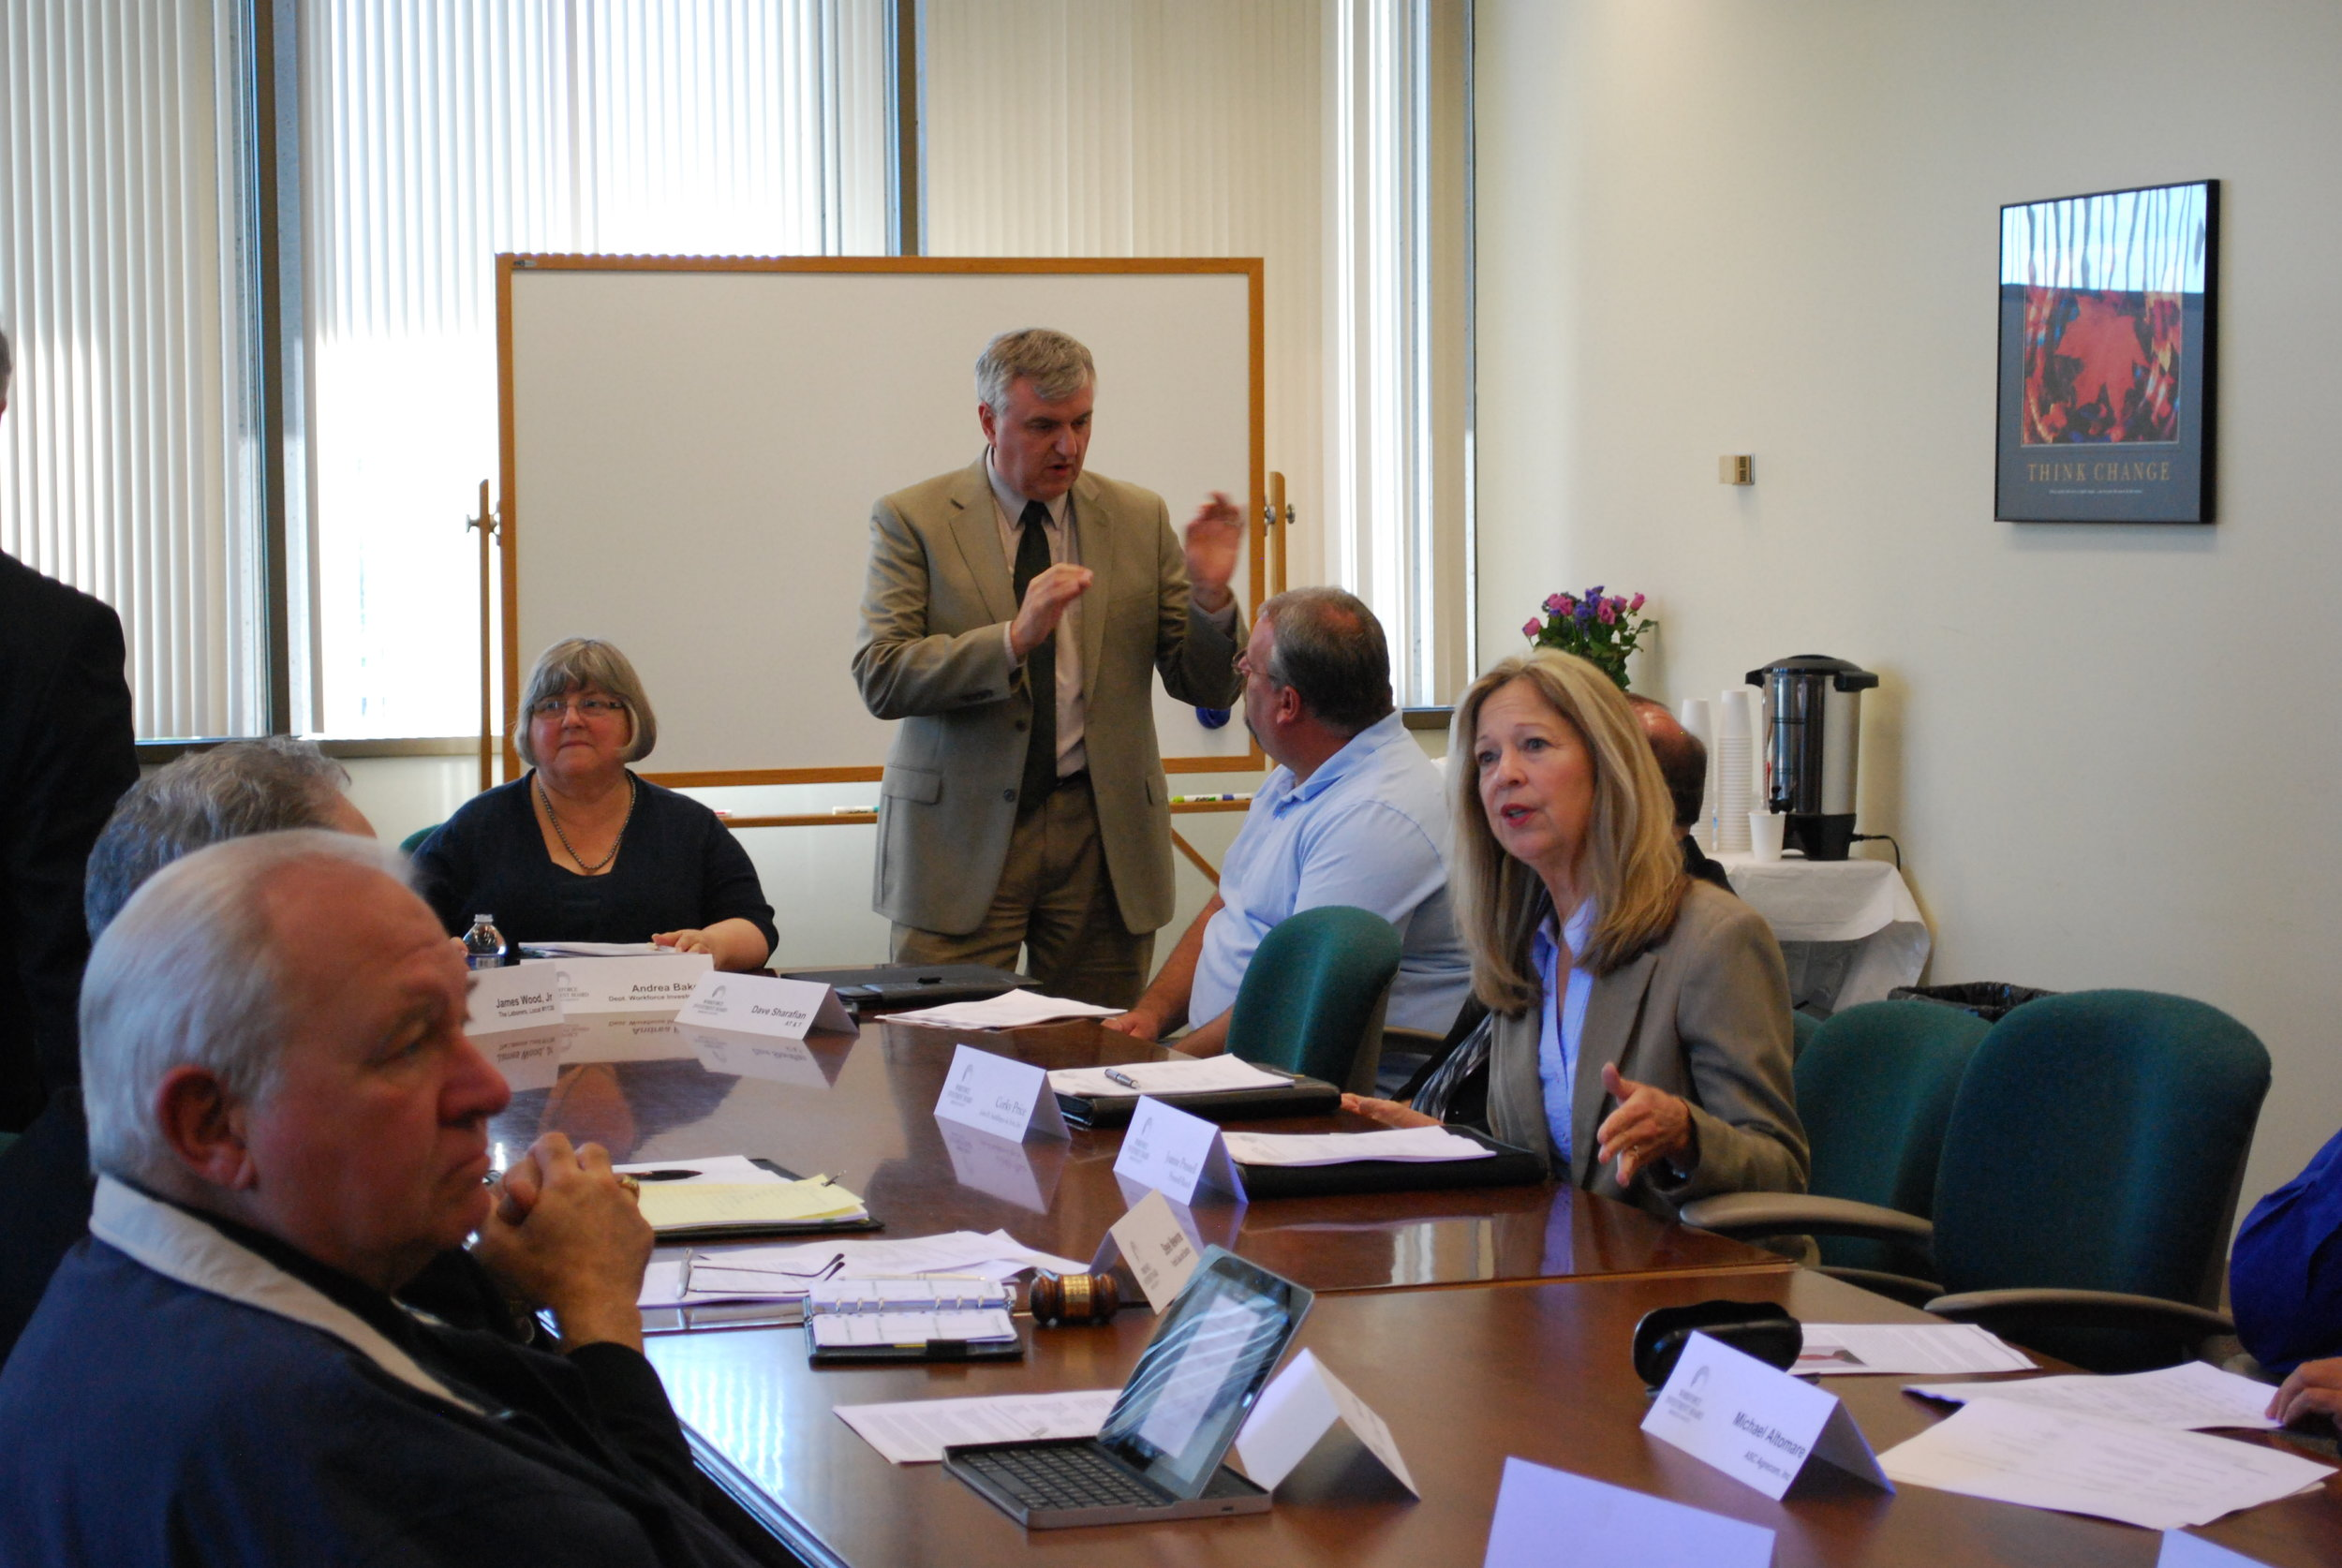 Steve Newvine served as chair of the Merced WIB from 2011-2013. Photo from Merced WIB.